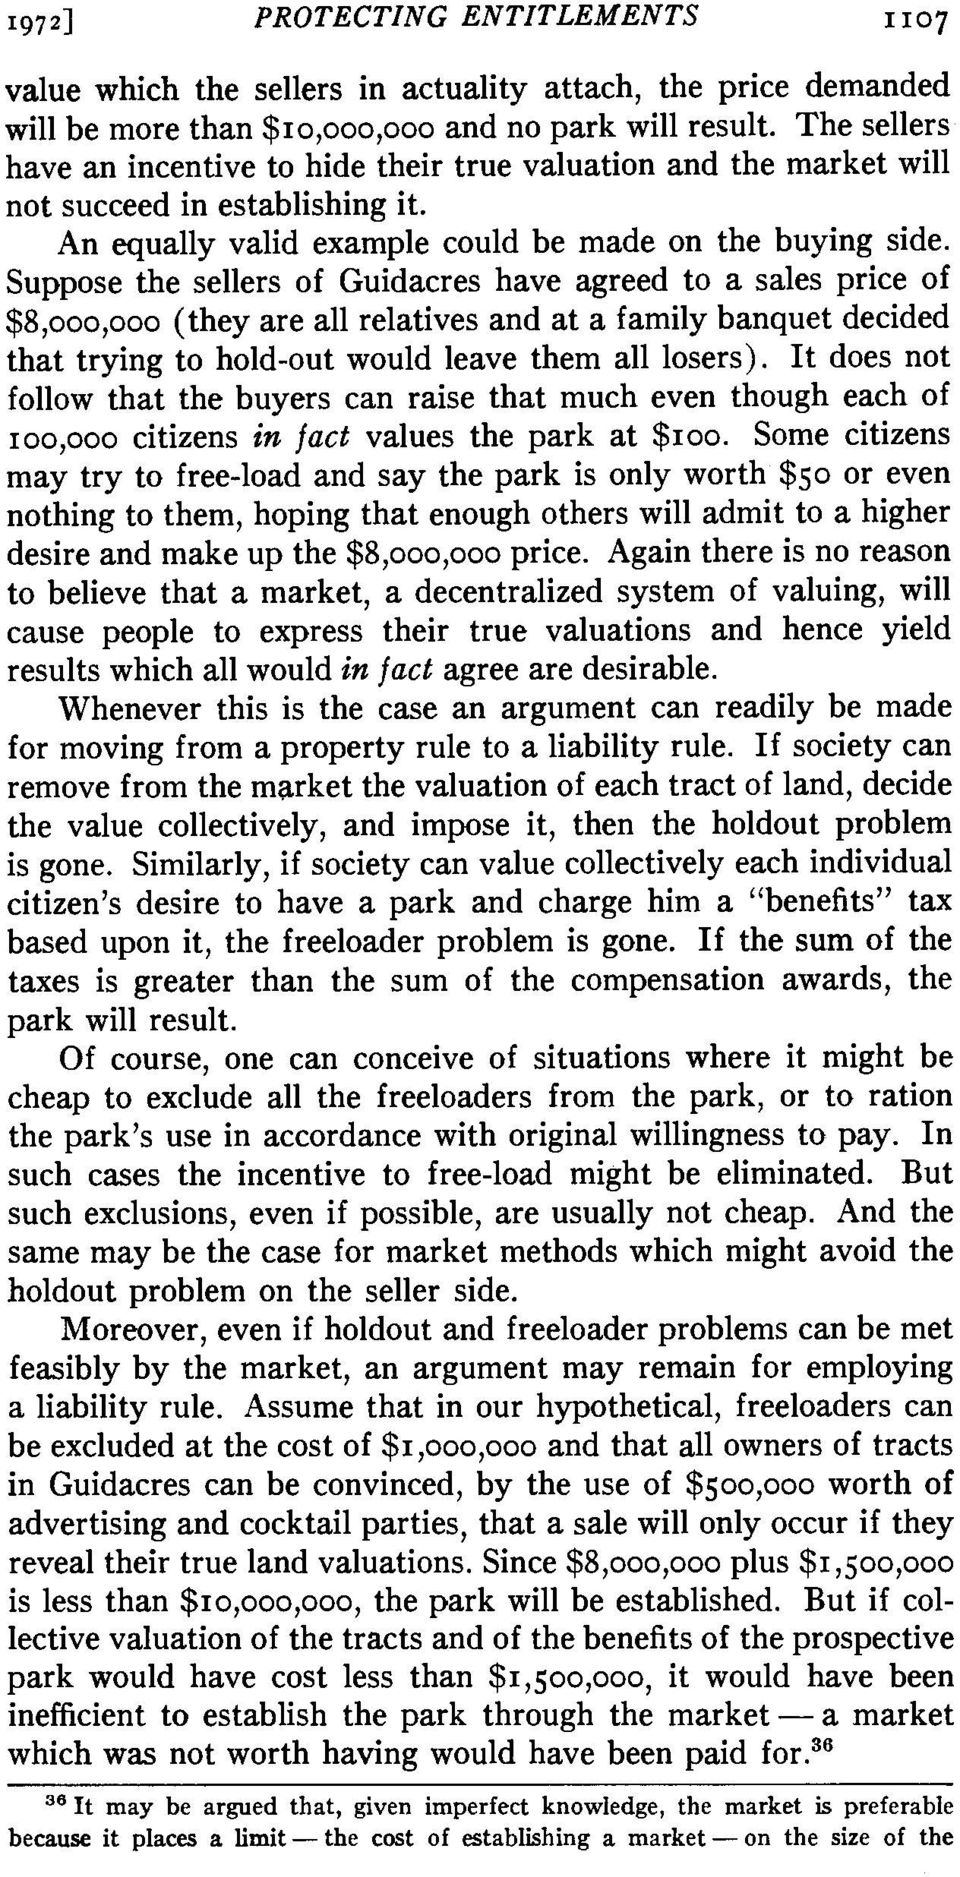 Suppose the sellers of Guidacres have agreed to a sales price of $8,ooo,ooo (they are all relatives and at a family banquet decided that trying to hold-out would leave them all losers).